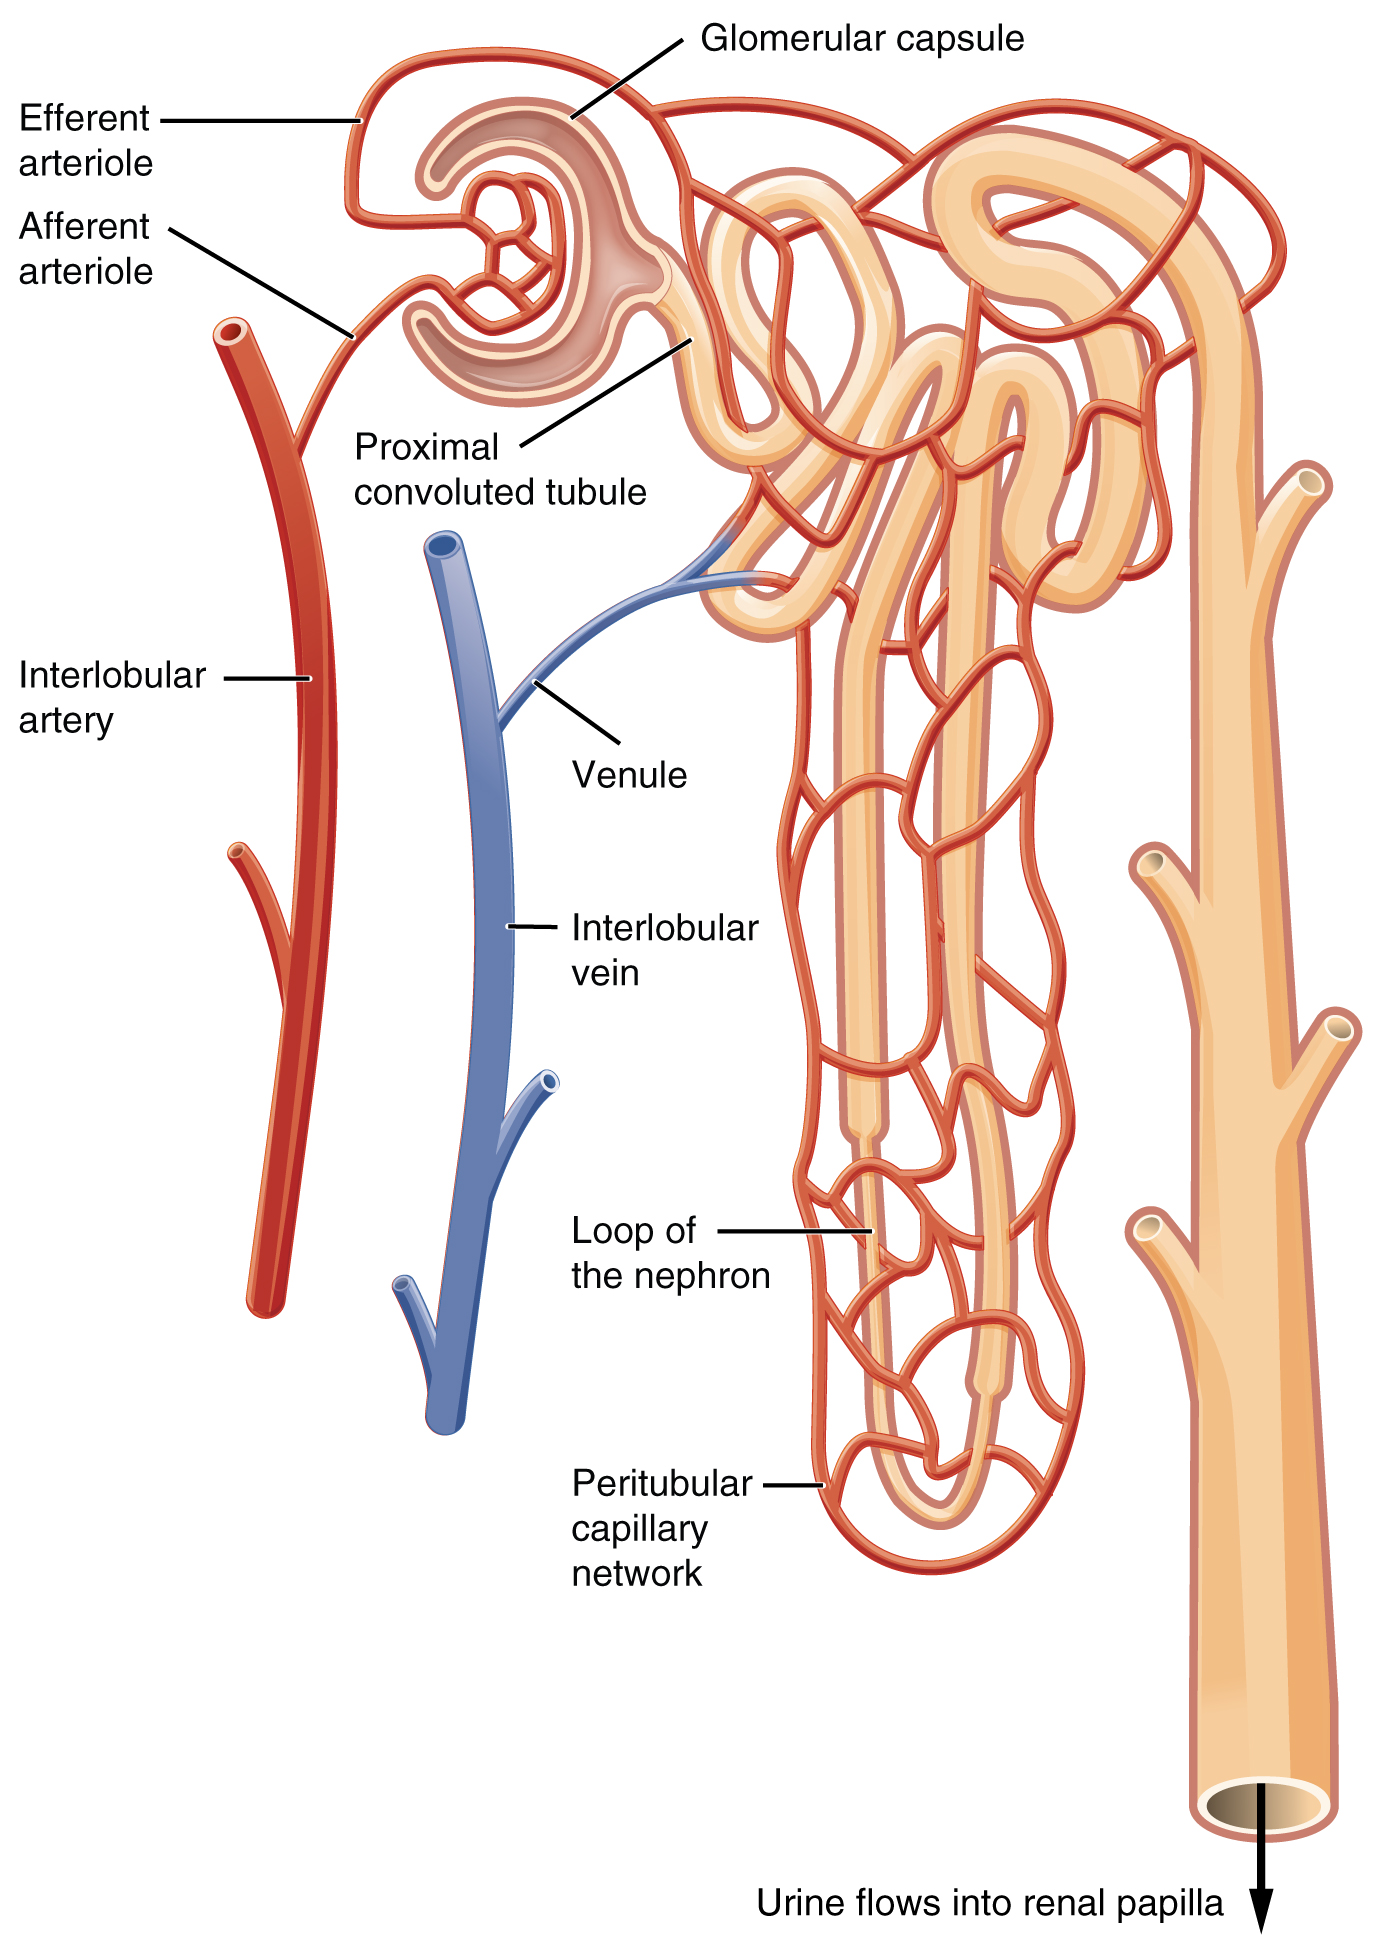 This image shows the blood vessels and the direction of blood flow in the nephron.